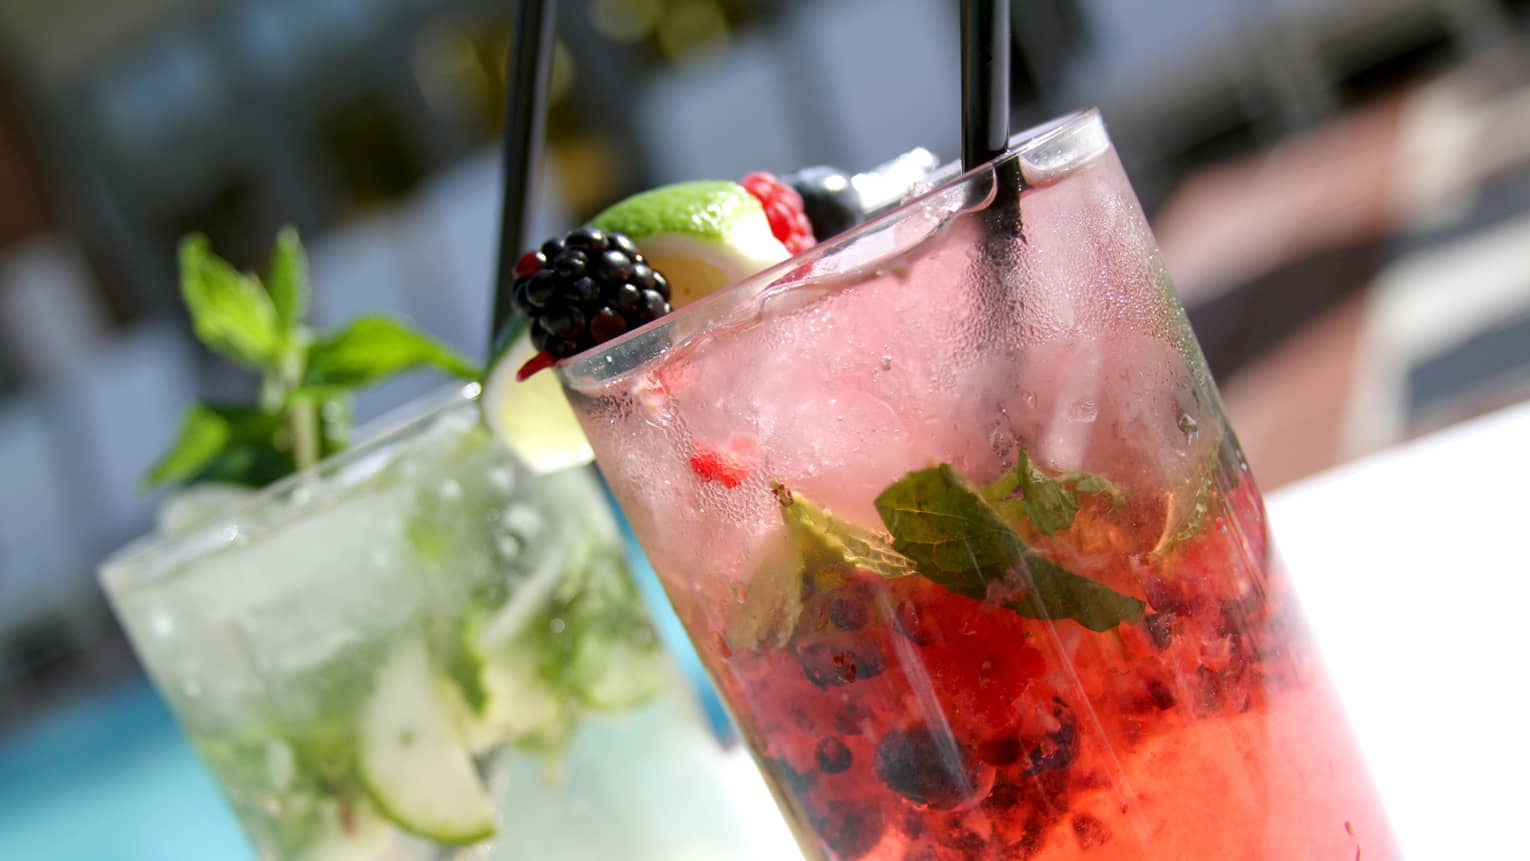 Two different mojitos: one pink garnished with fruit, one with cucumber and mint